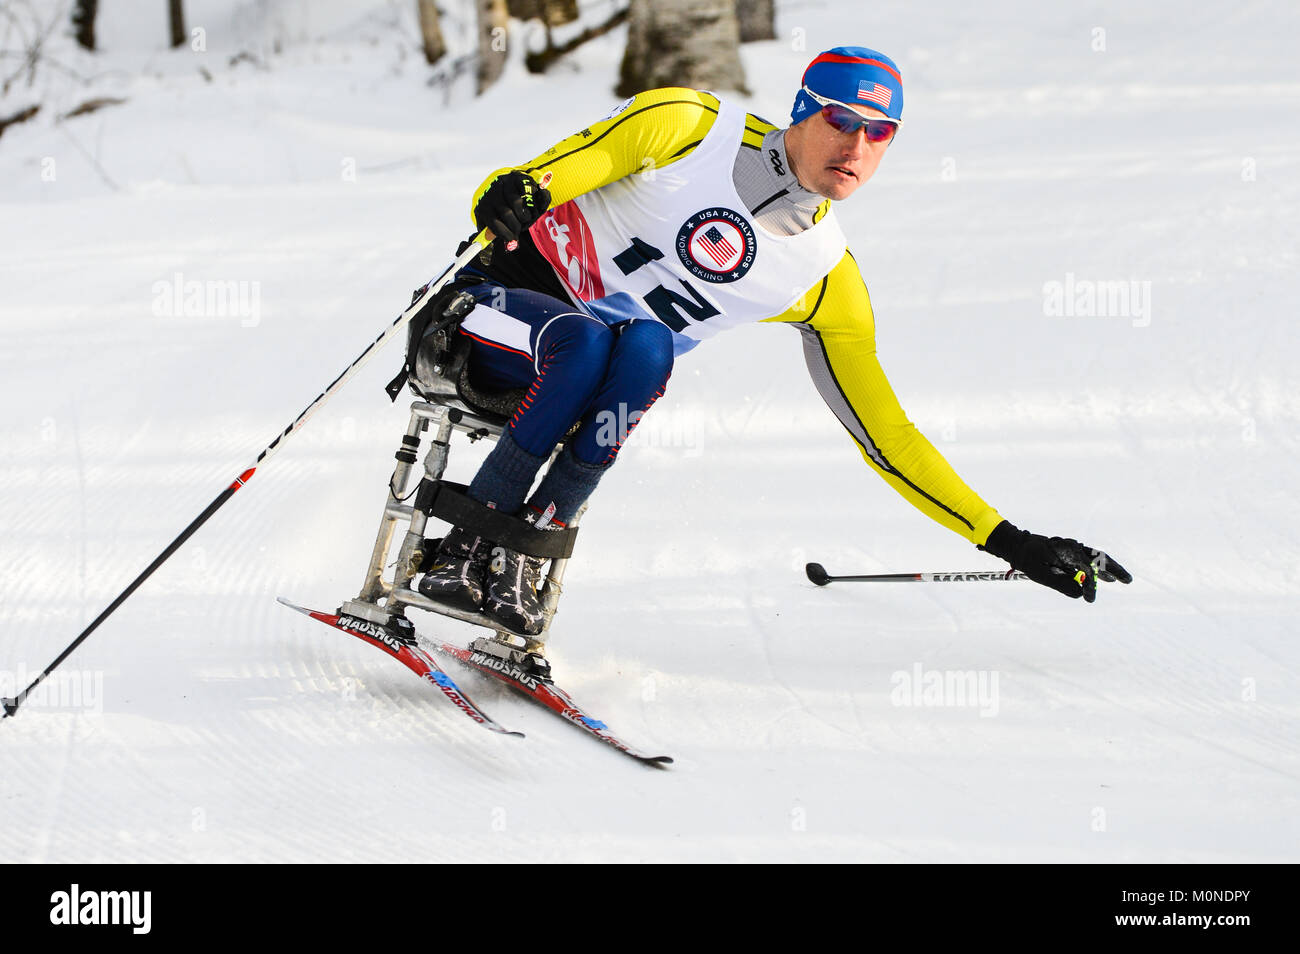 Paralympic cross country ski racer at 2016 U.S. Paralympics Sit Ski races, Craftsbury Outdoor Center, Craftsbury, - Stock Image